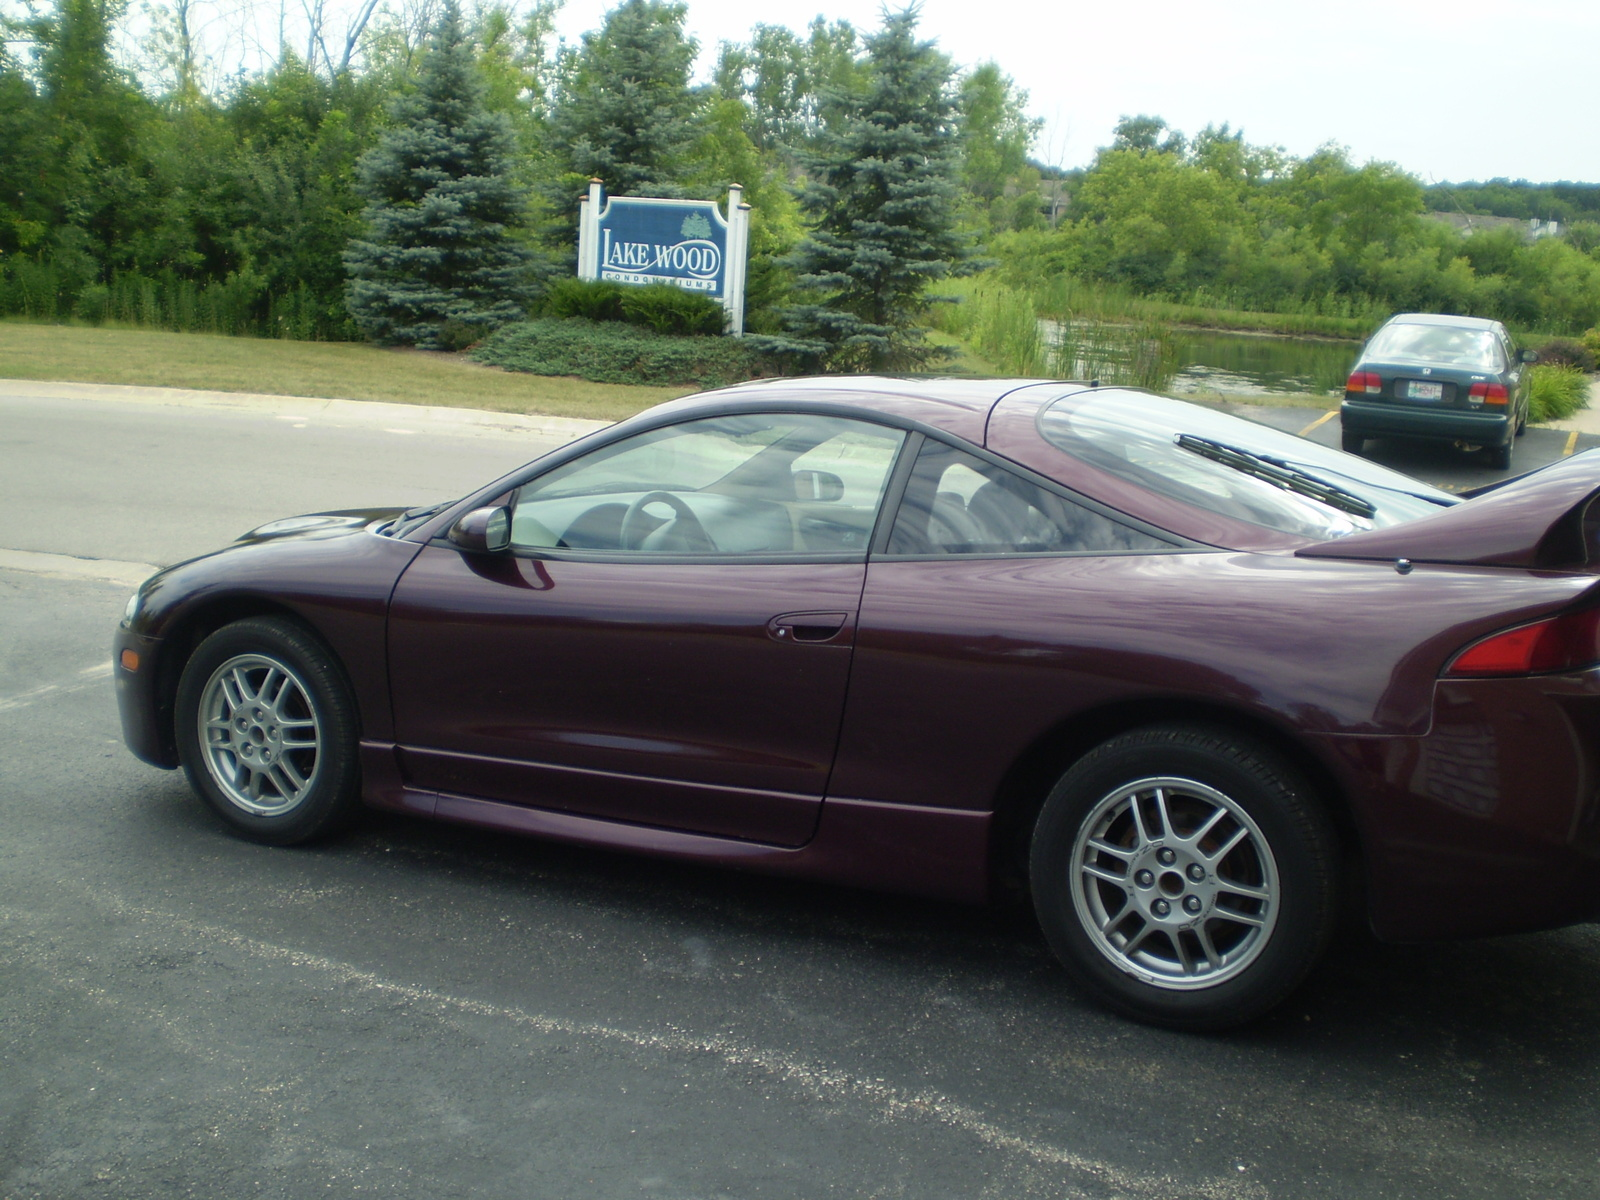 hight resolution of mitsubishi eclipse questions car problems engine died and so the the power steering